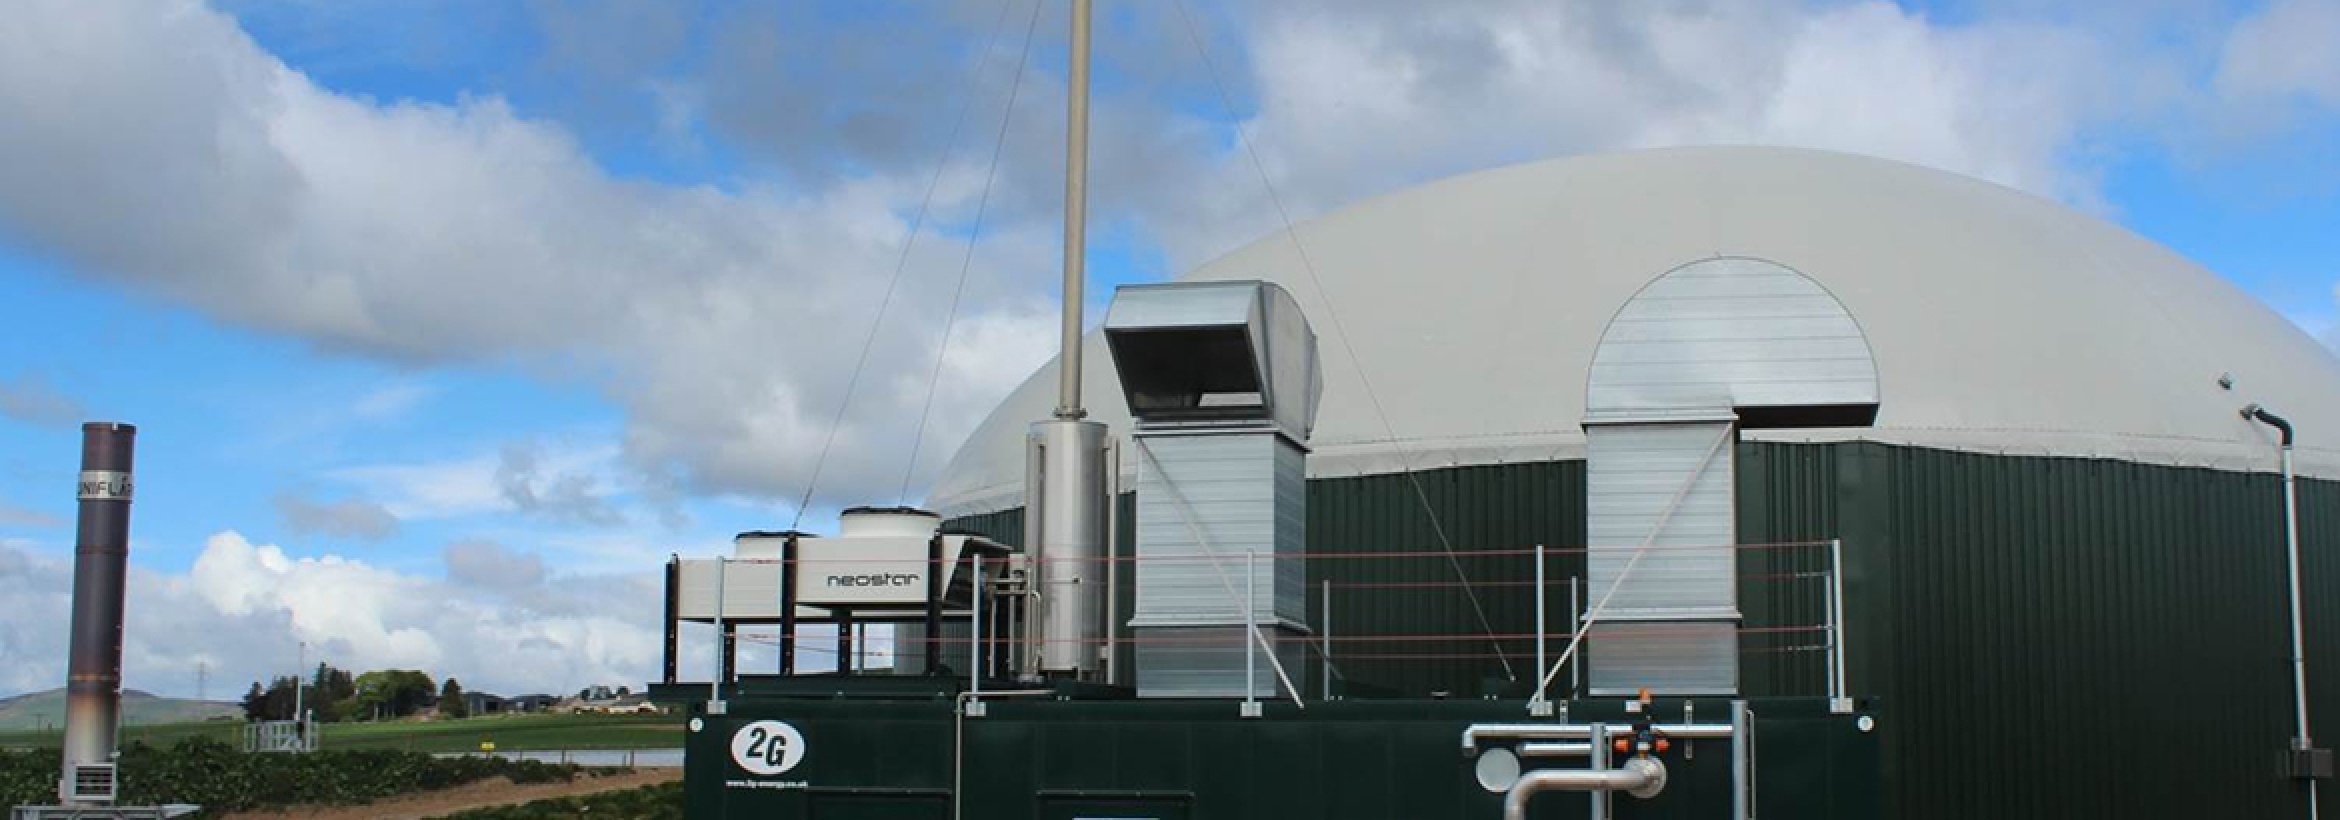 Renewable electricity generating system representing NFU Energy's FiT application and compliance service